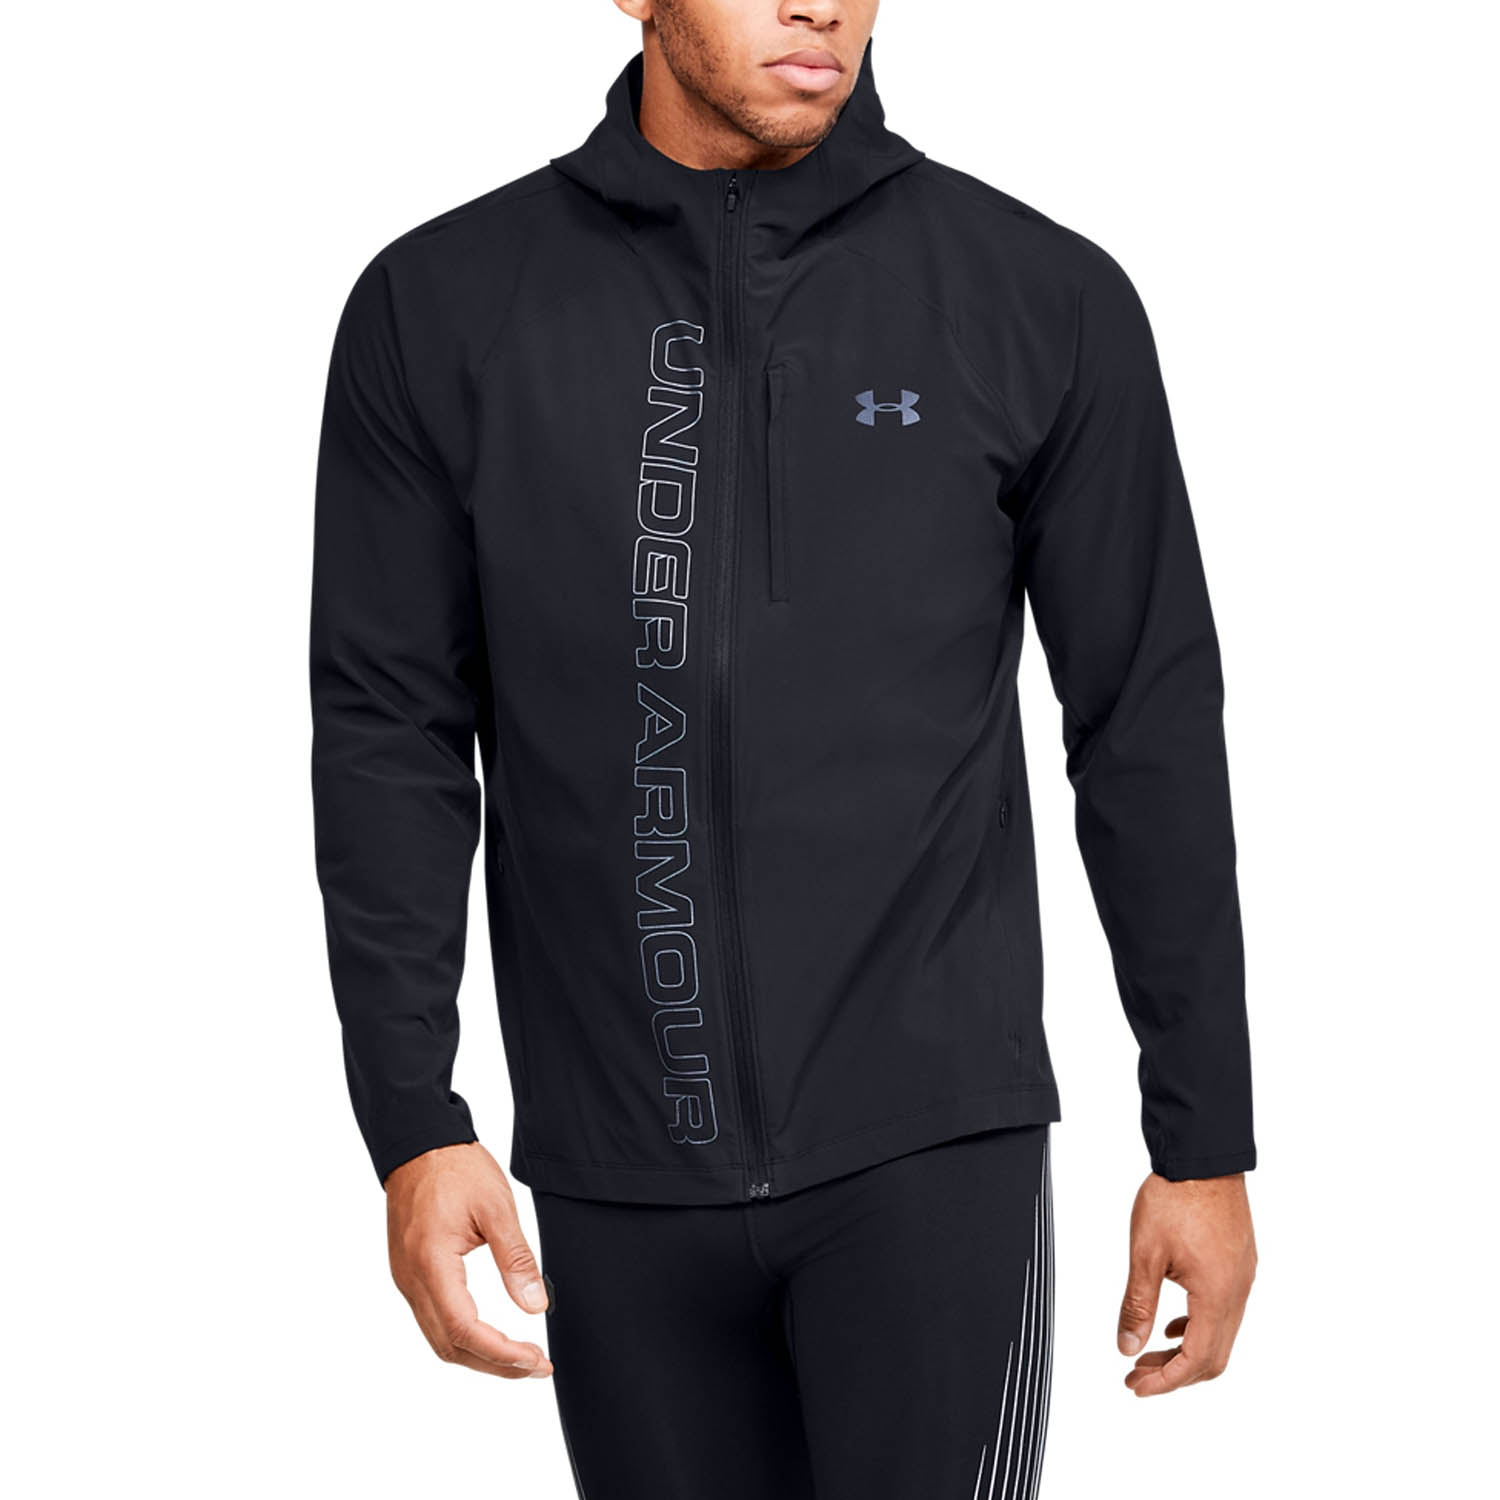 Under Armour Qualifier OutRun Giacca - Black/Reflective